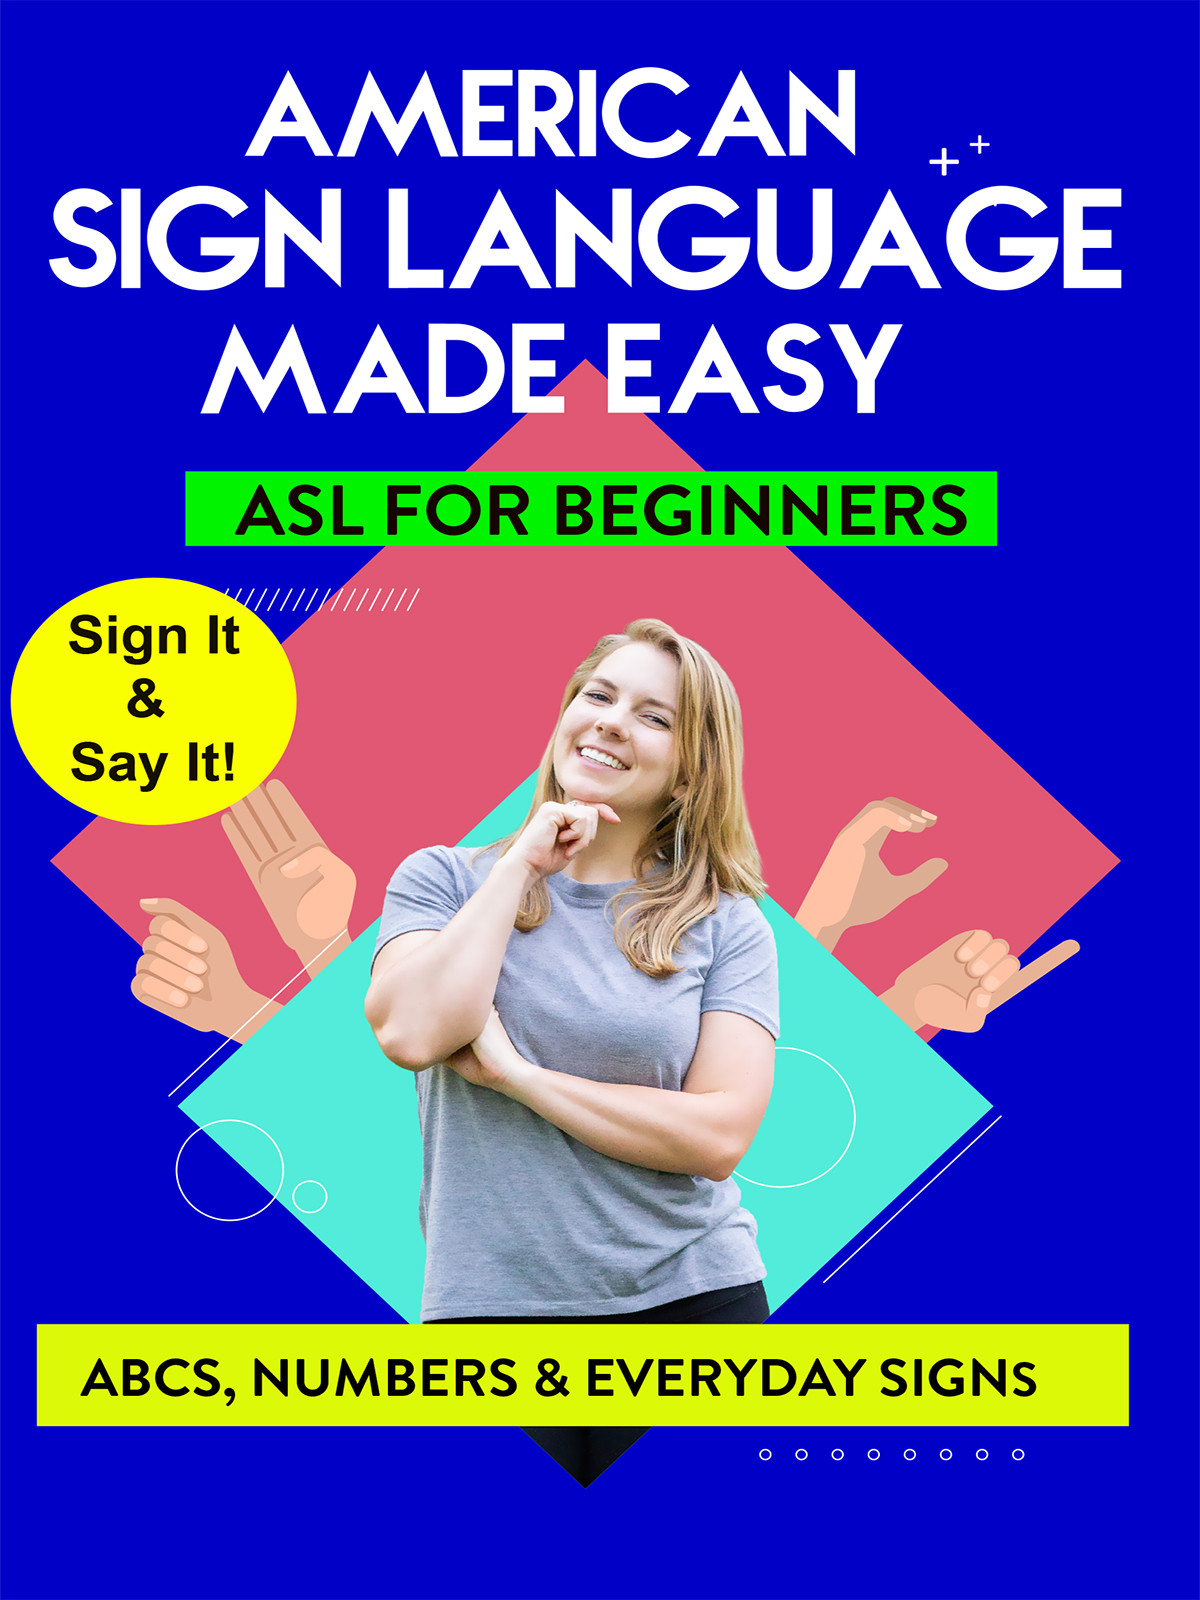 K9801 - ASL - Learn ABCs, Numbers, Fingerspelling, Colors, Grammar Basics & Everyday Useful Signs